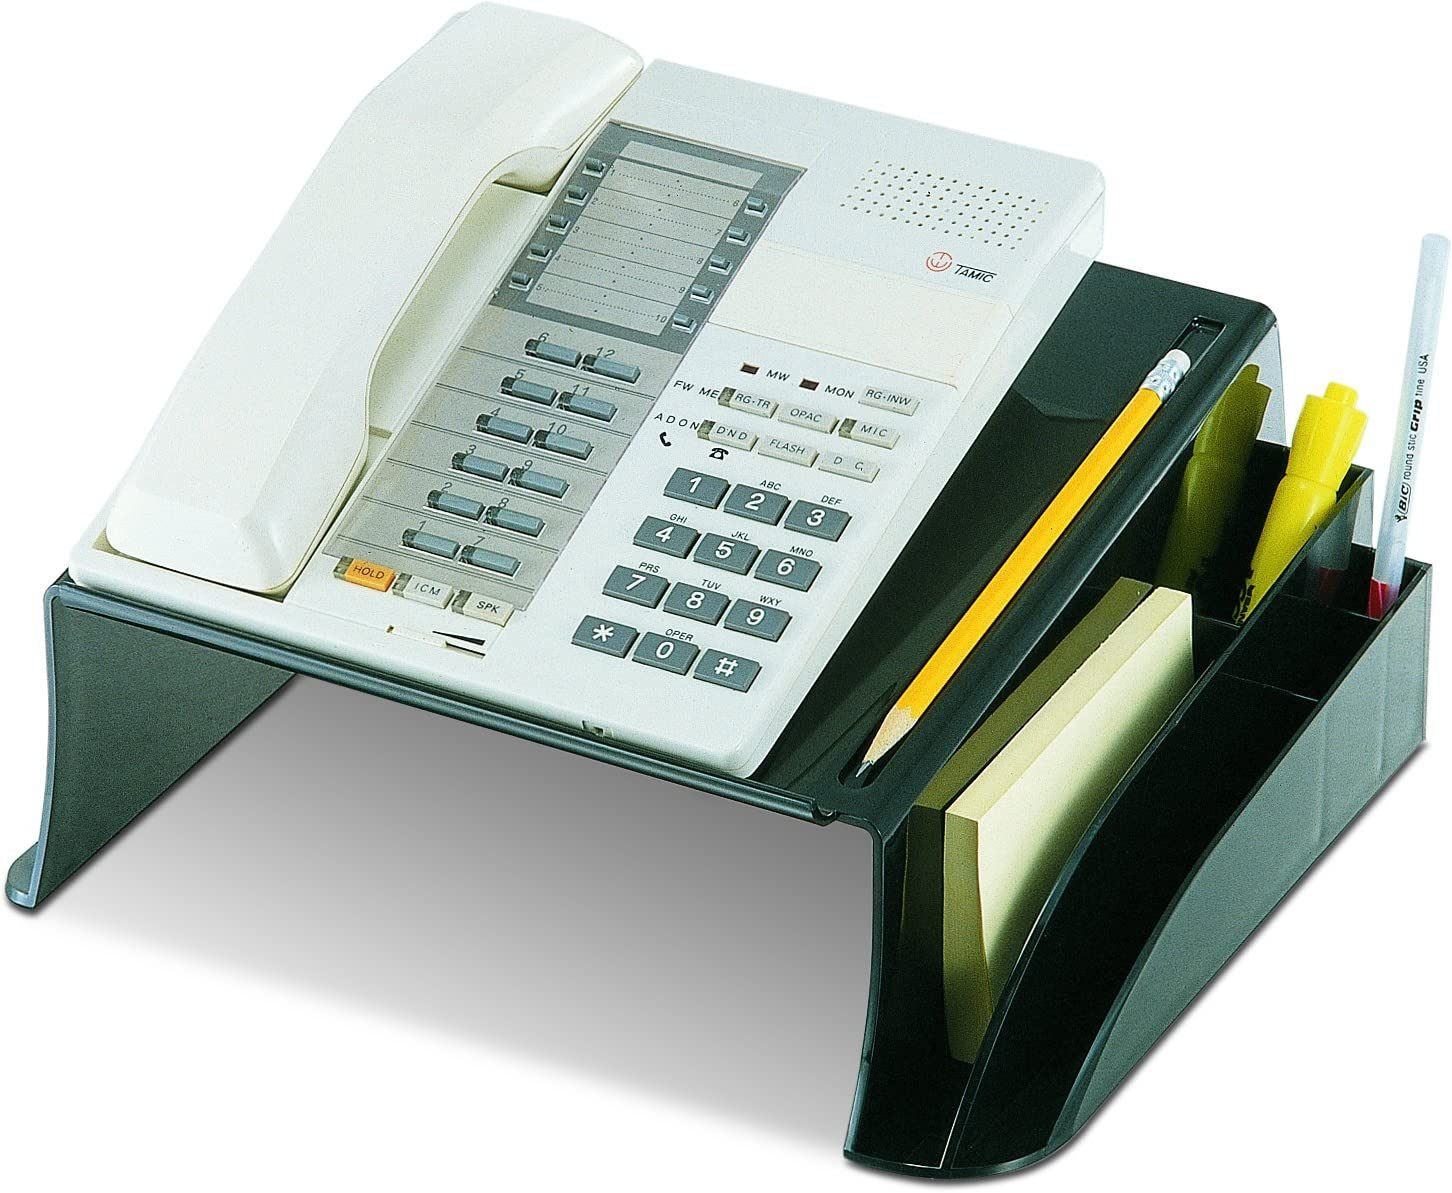 Officemate 2200 Series Executive Telephone Stand, Black (22802) : Desk Phone Stand : Office Products